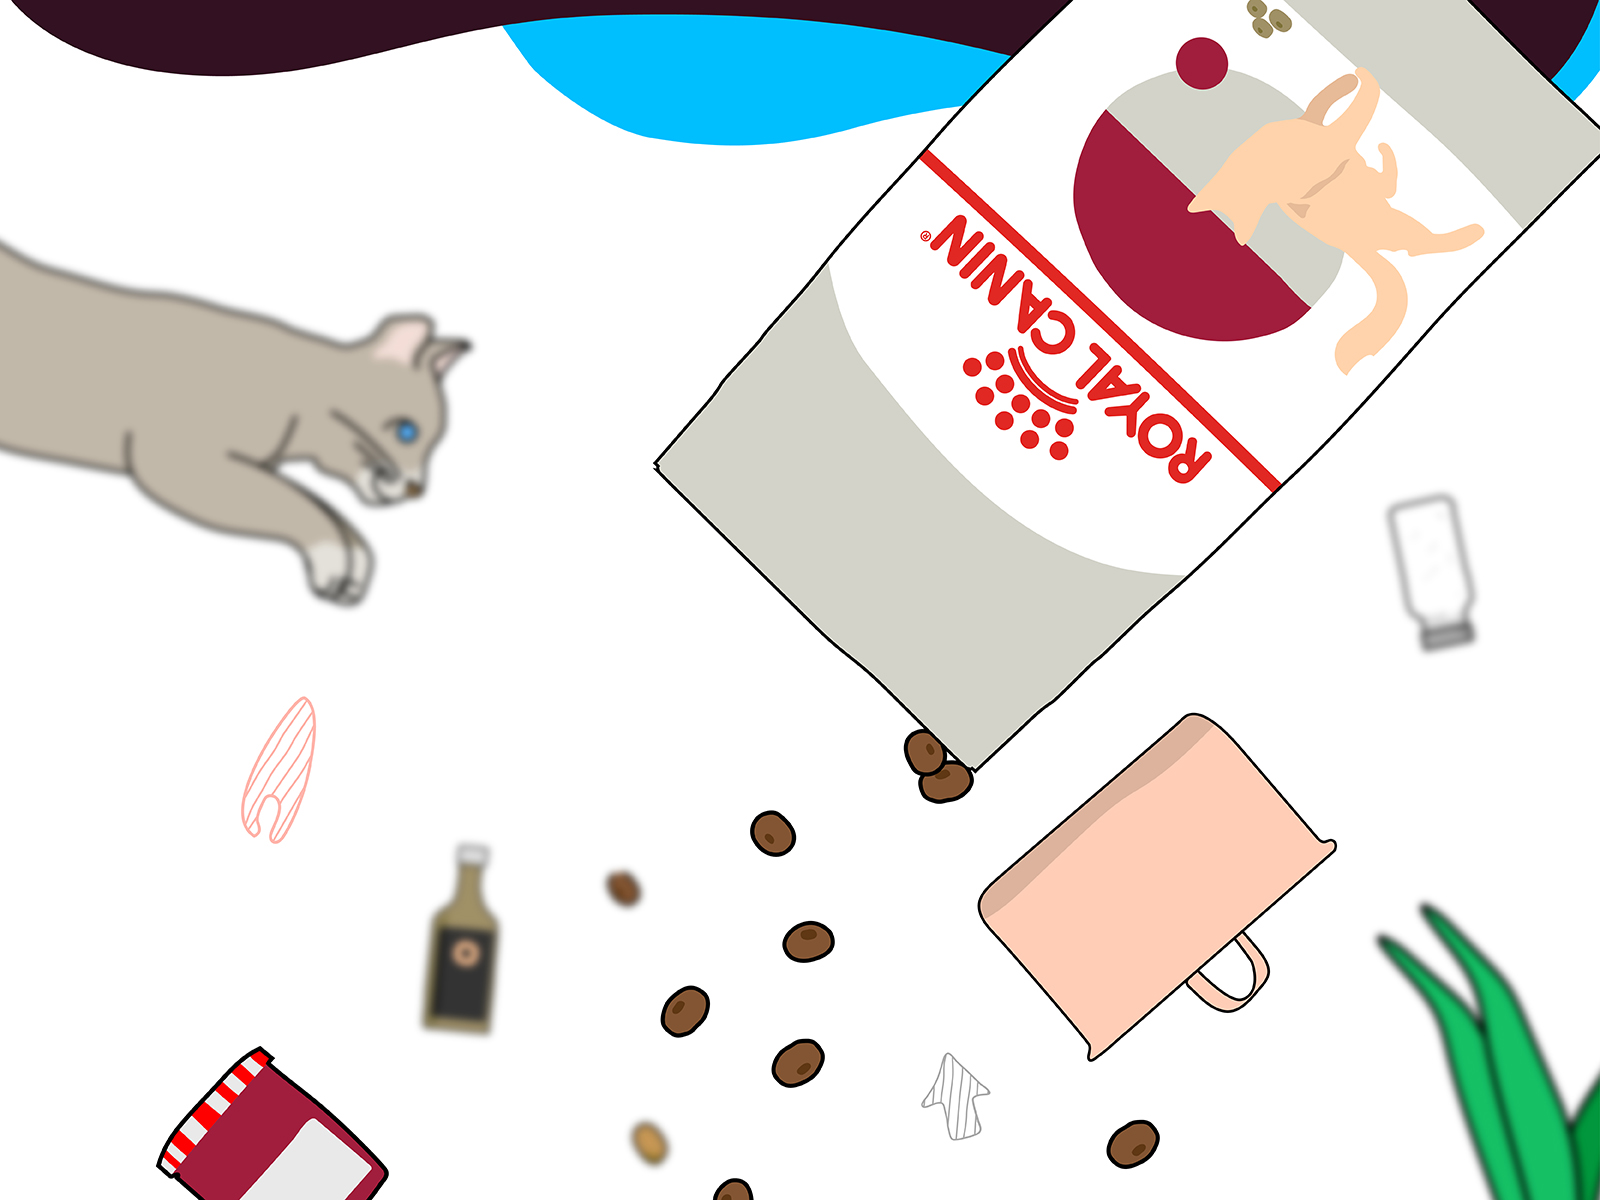 Royal Canin wet food promotional video illustration of cat, wet food product packaging, kitchen utensils and plant